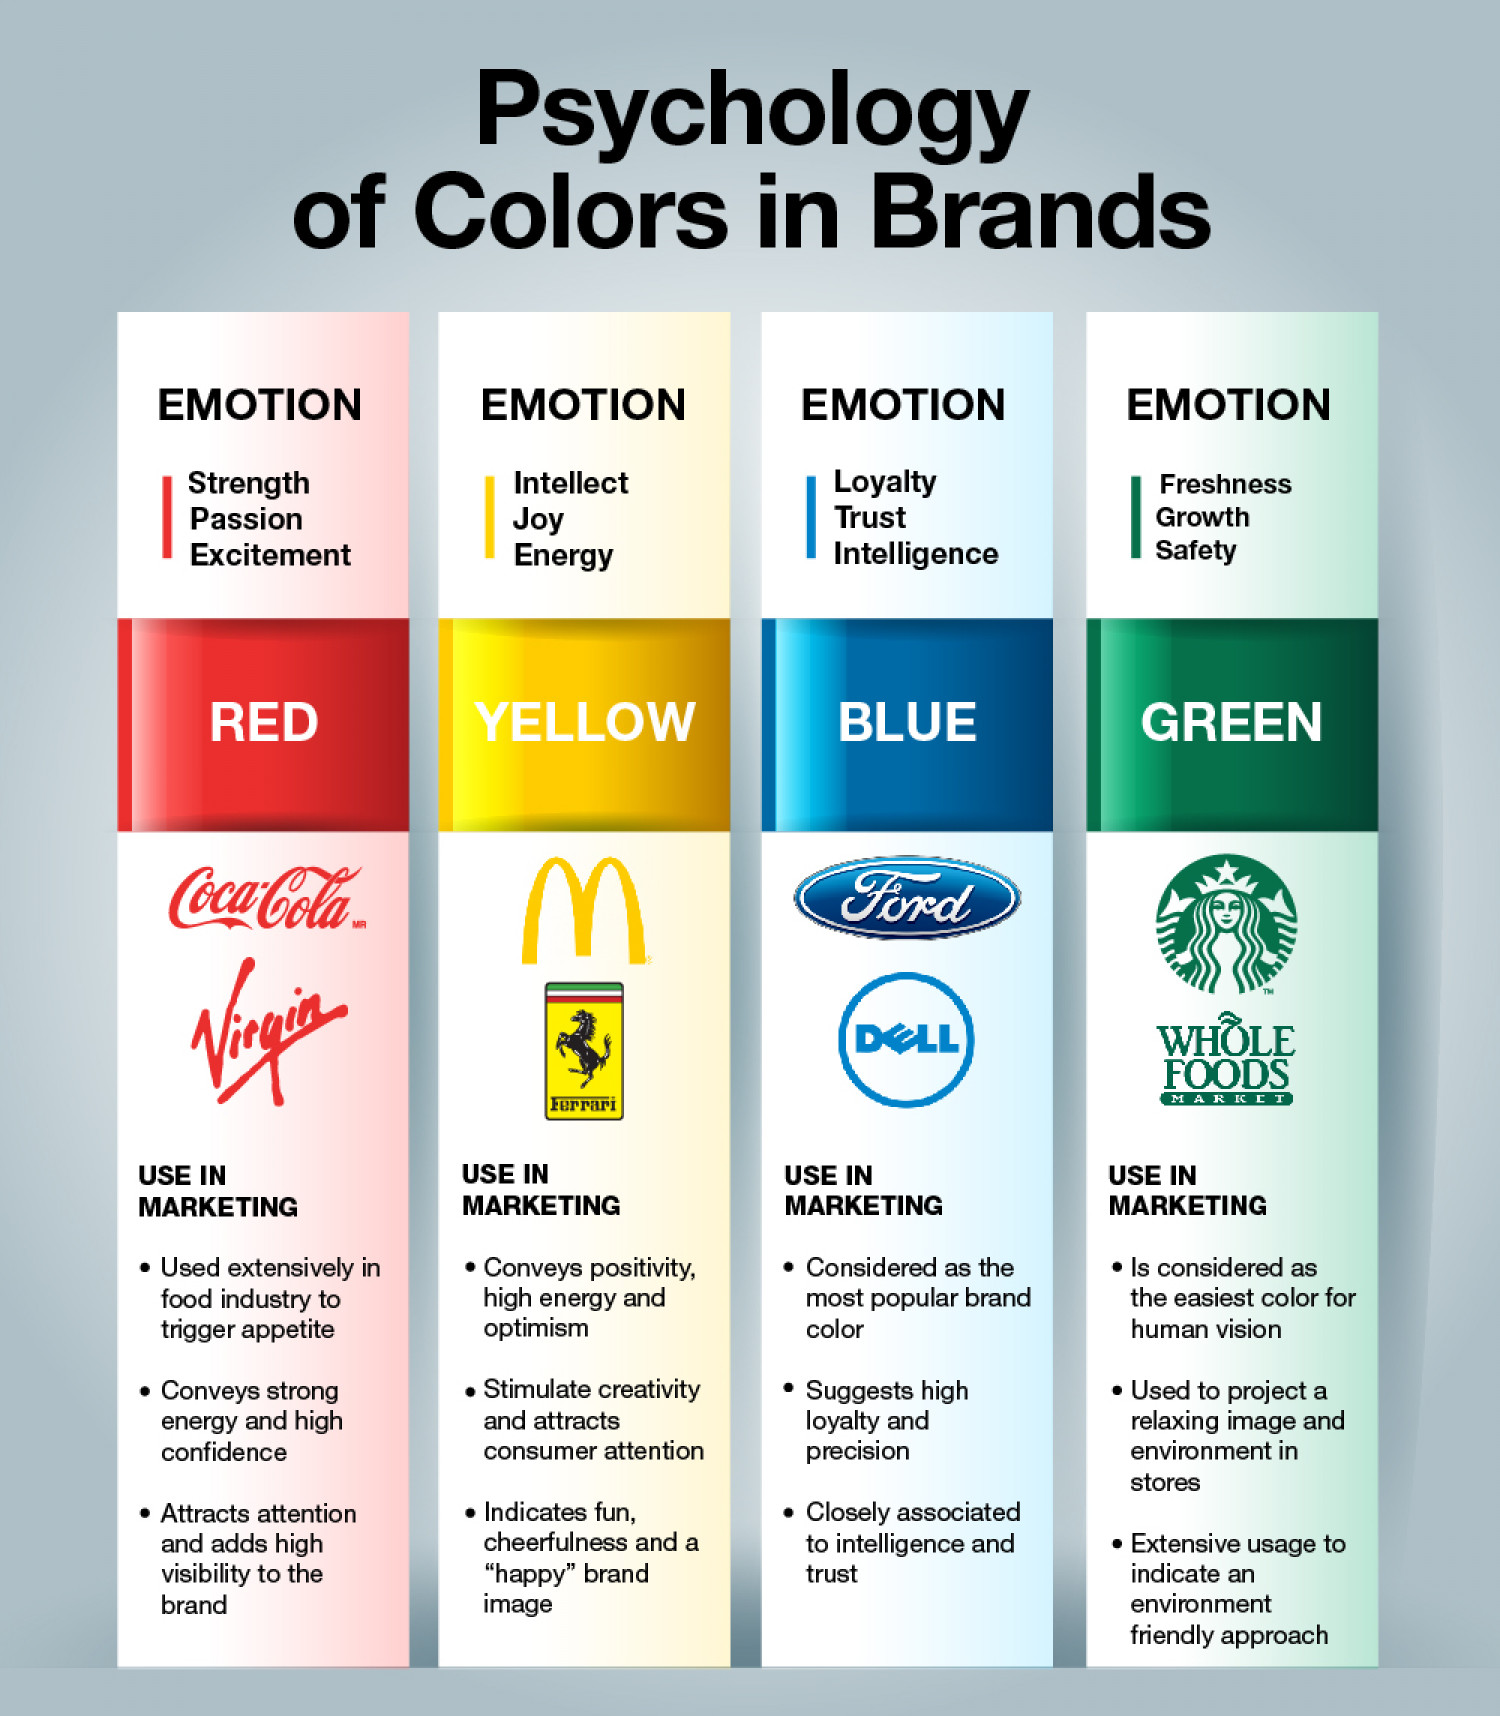 Color Psychology in Brands | Visual.ly